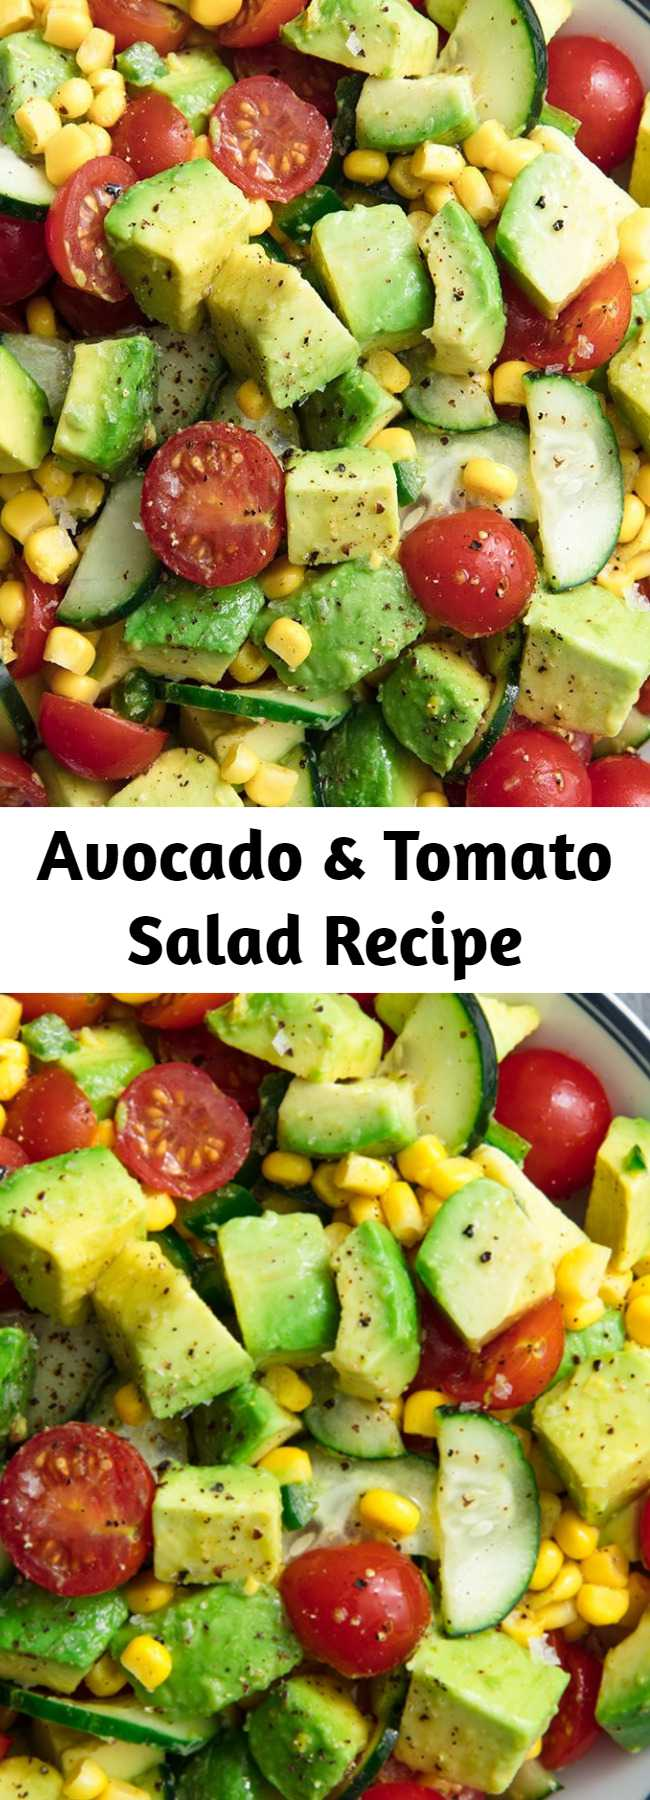 Avocado & Tomato Salad Recipe - Don't confuse this with guac — there's way more depth of flavor. You are, however, totally welcome to eat it with chips. (Just know it tastes amazing with out 'em.) #easyrecipe #avocado #salad #summer #food